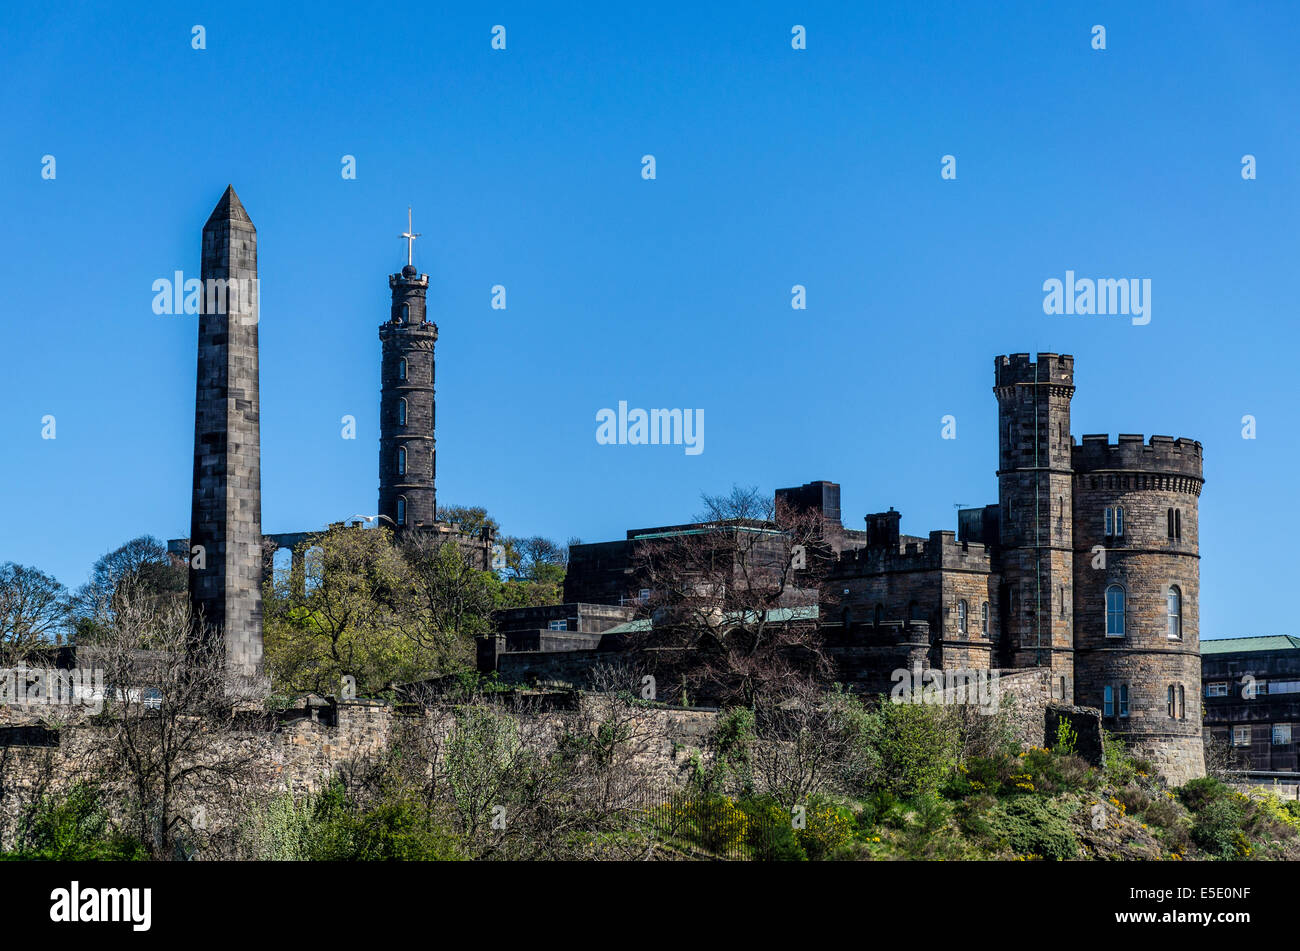 Calton Hill in Edinburgh contains many important monuments including the Dugald Stewart Monument and the Nelson Stock Photo